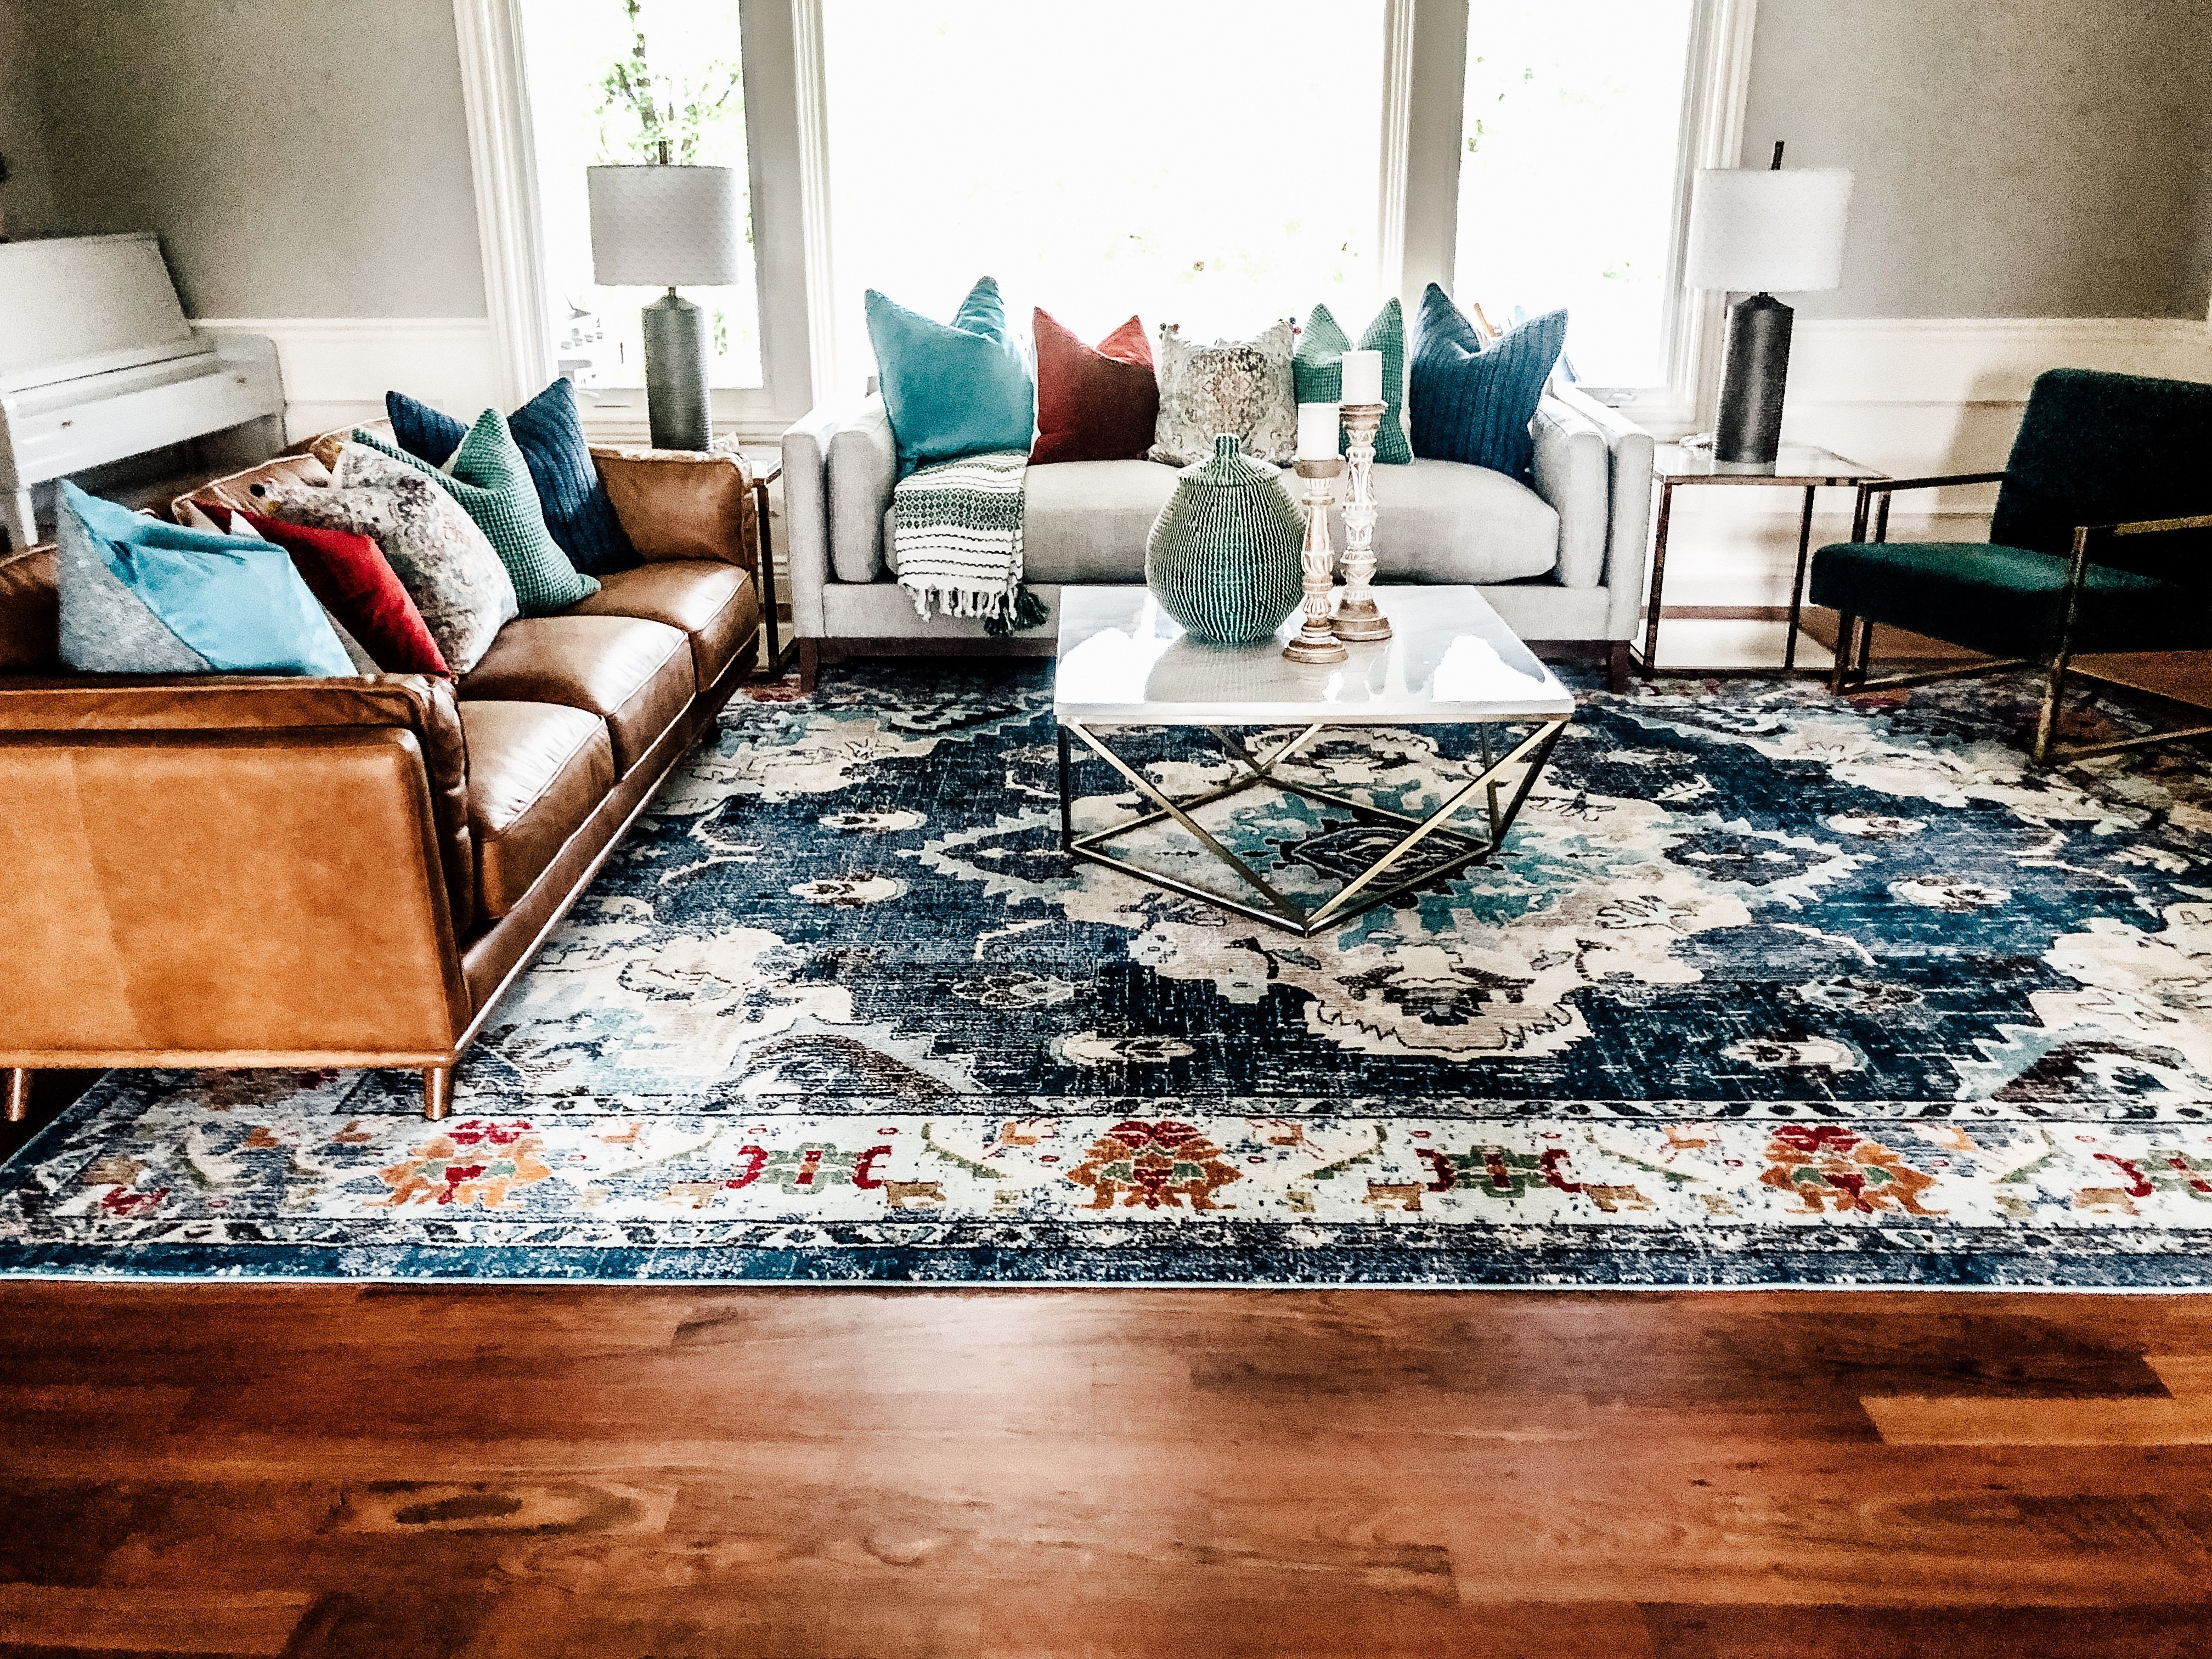 Colorful Interiors Leather Couches Living Room Couches Living Room Rugs In Living Room #tan #rugs #for #living #room